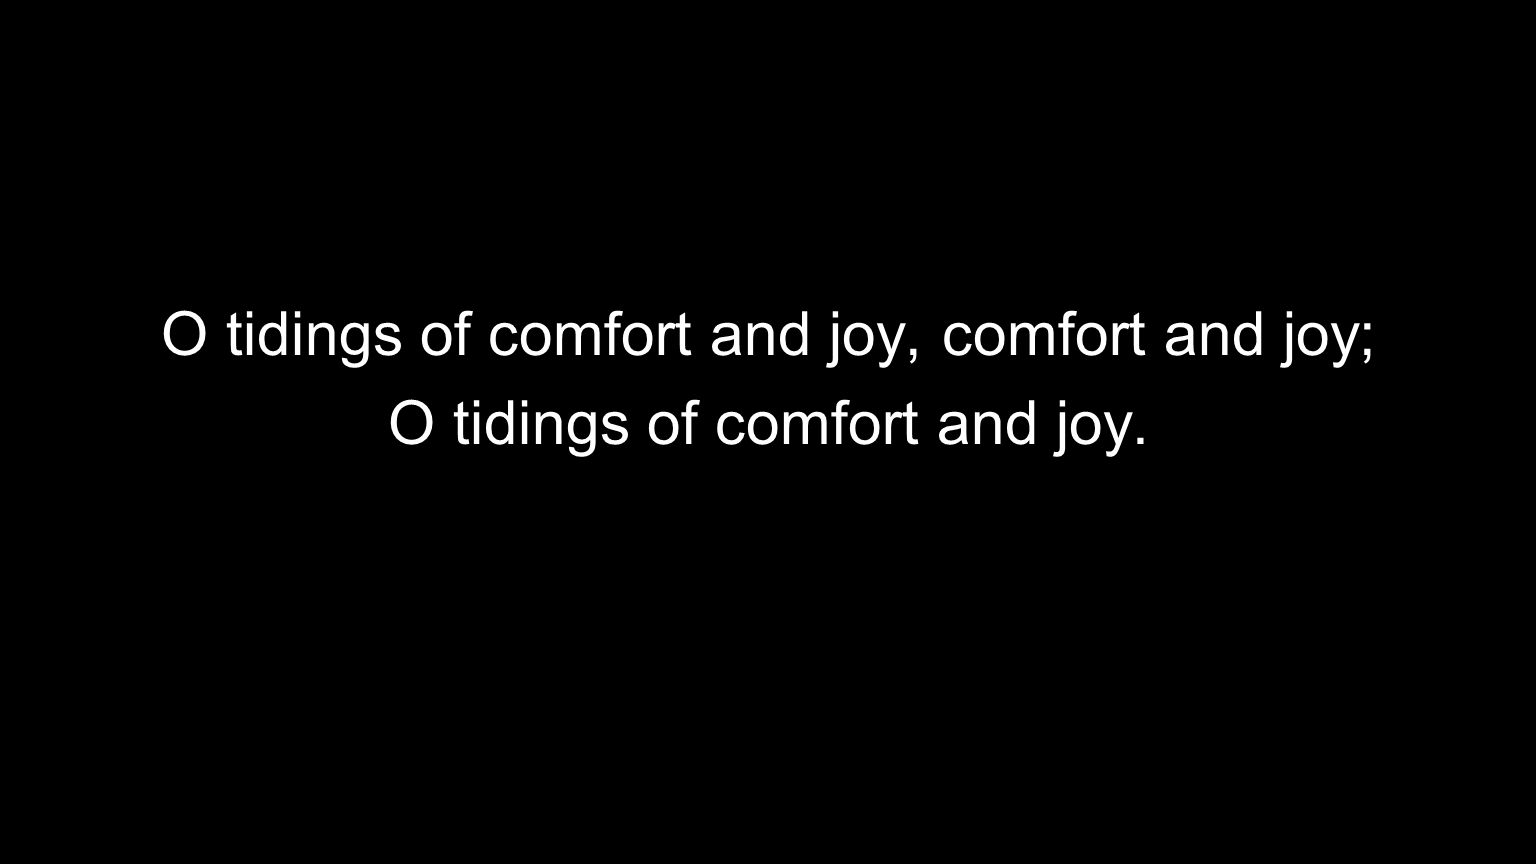 O tidings of comfort and joy, comfort and joy; O tidings of comfort and joy.